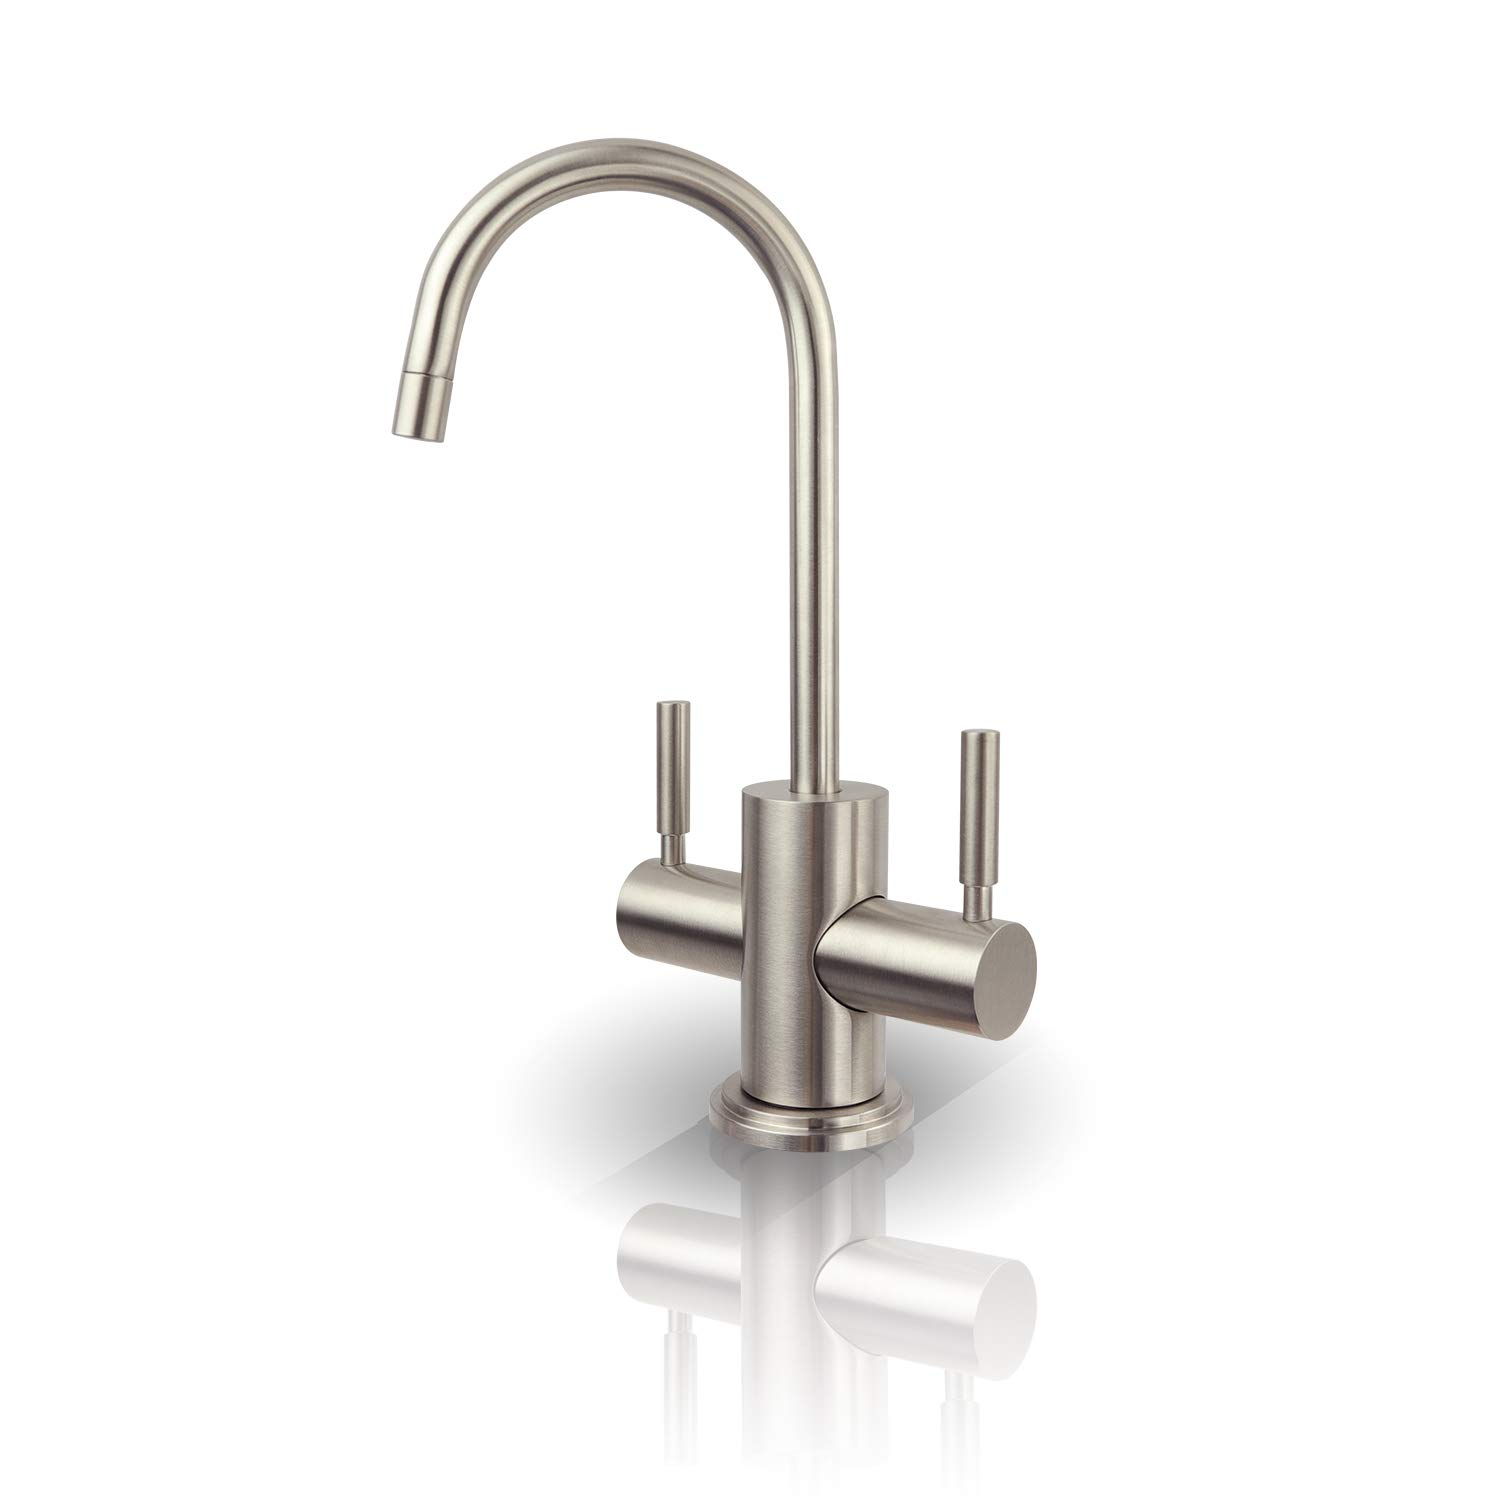 APEC Water Systems FAUCET-HC-WST-NP Instant Hot and Cold Reverse Osmosis Drinking Water Dispenser Faucet Brushed Nickel by APEC Water Systems